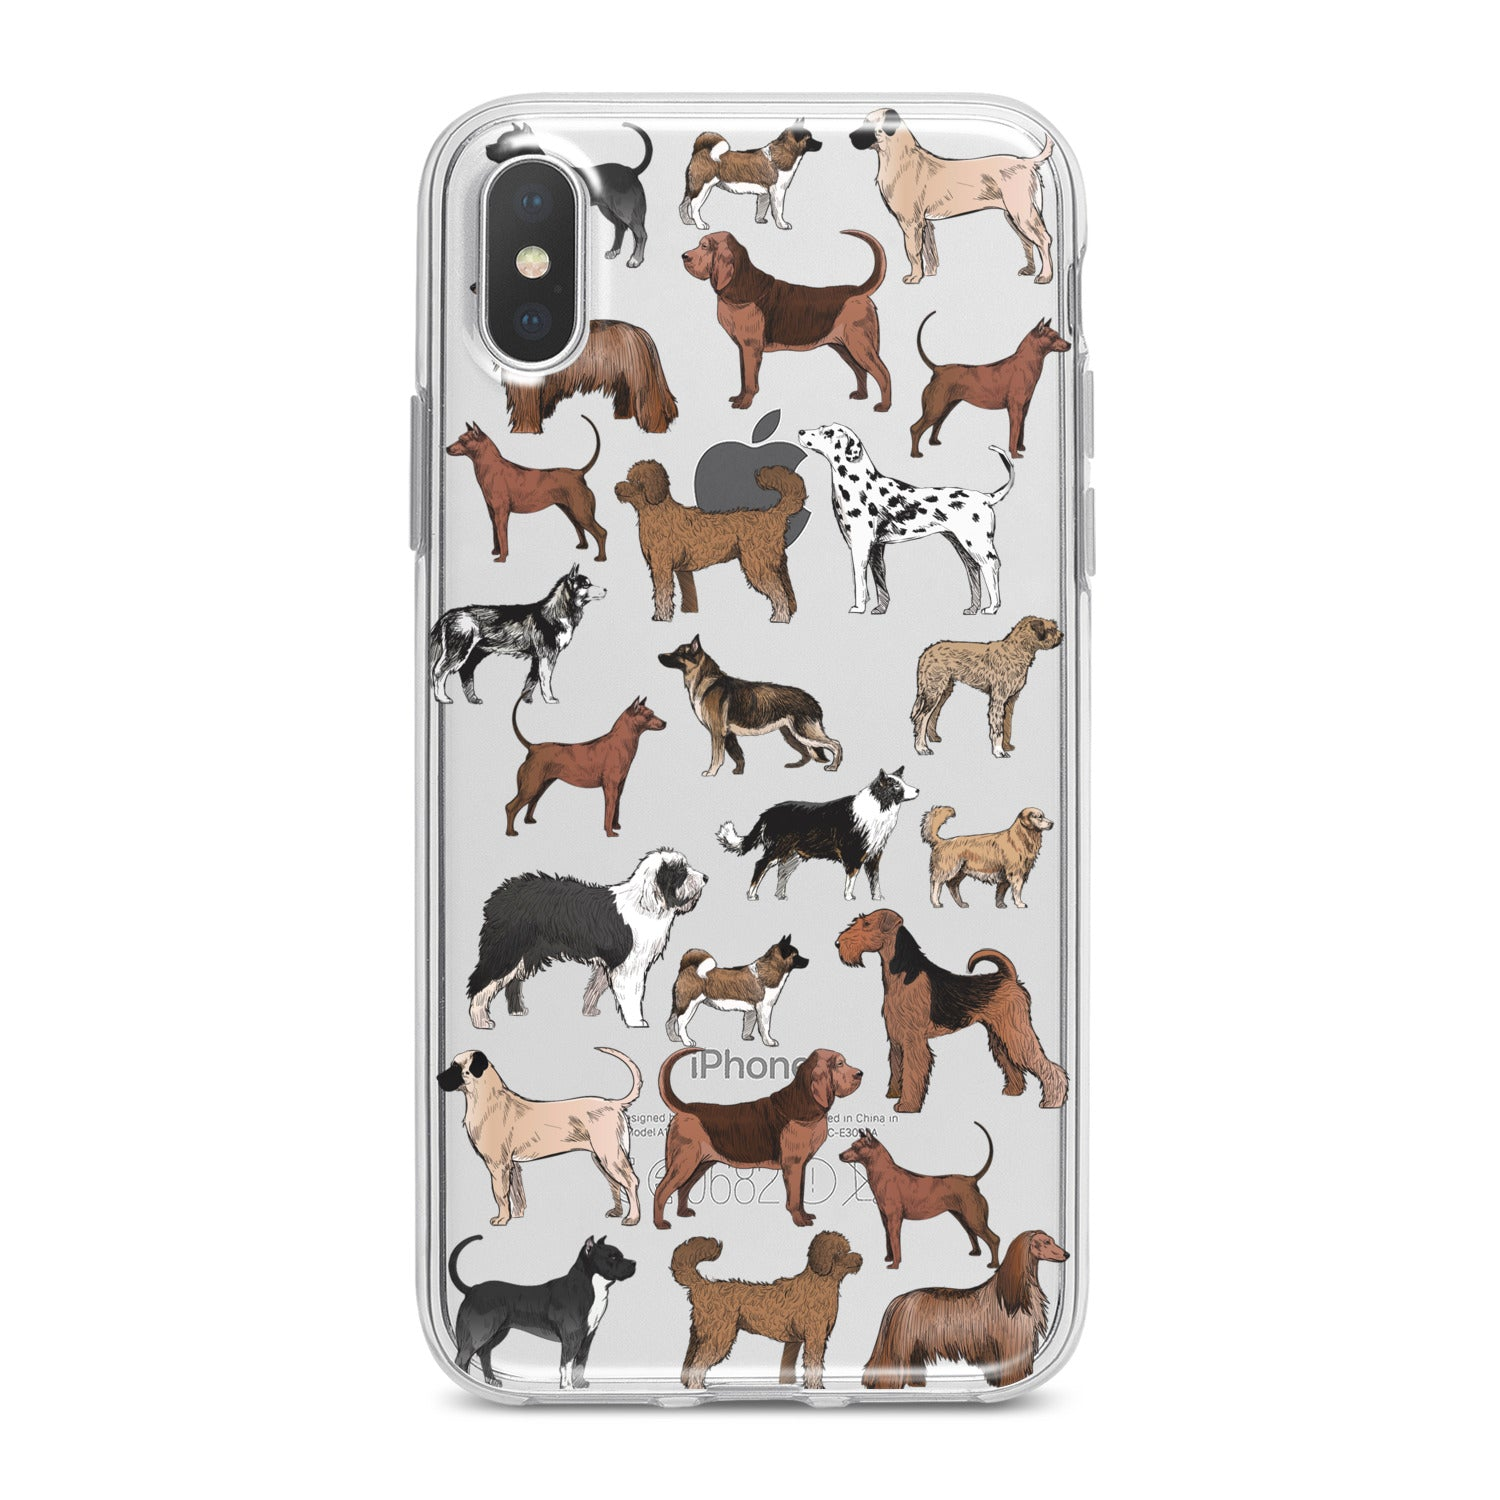 Lex Altern Dog Pattern Phone Case for your iPhone & Android phone.